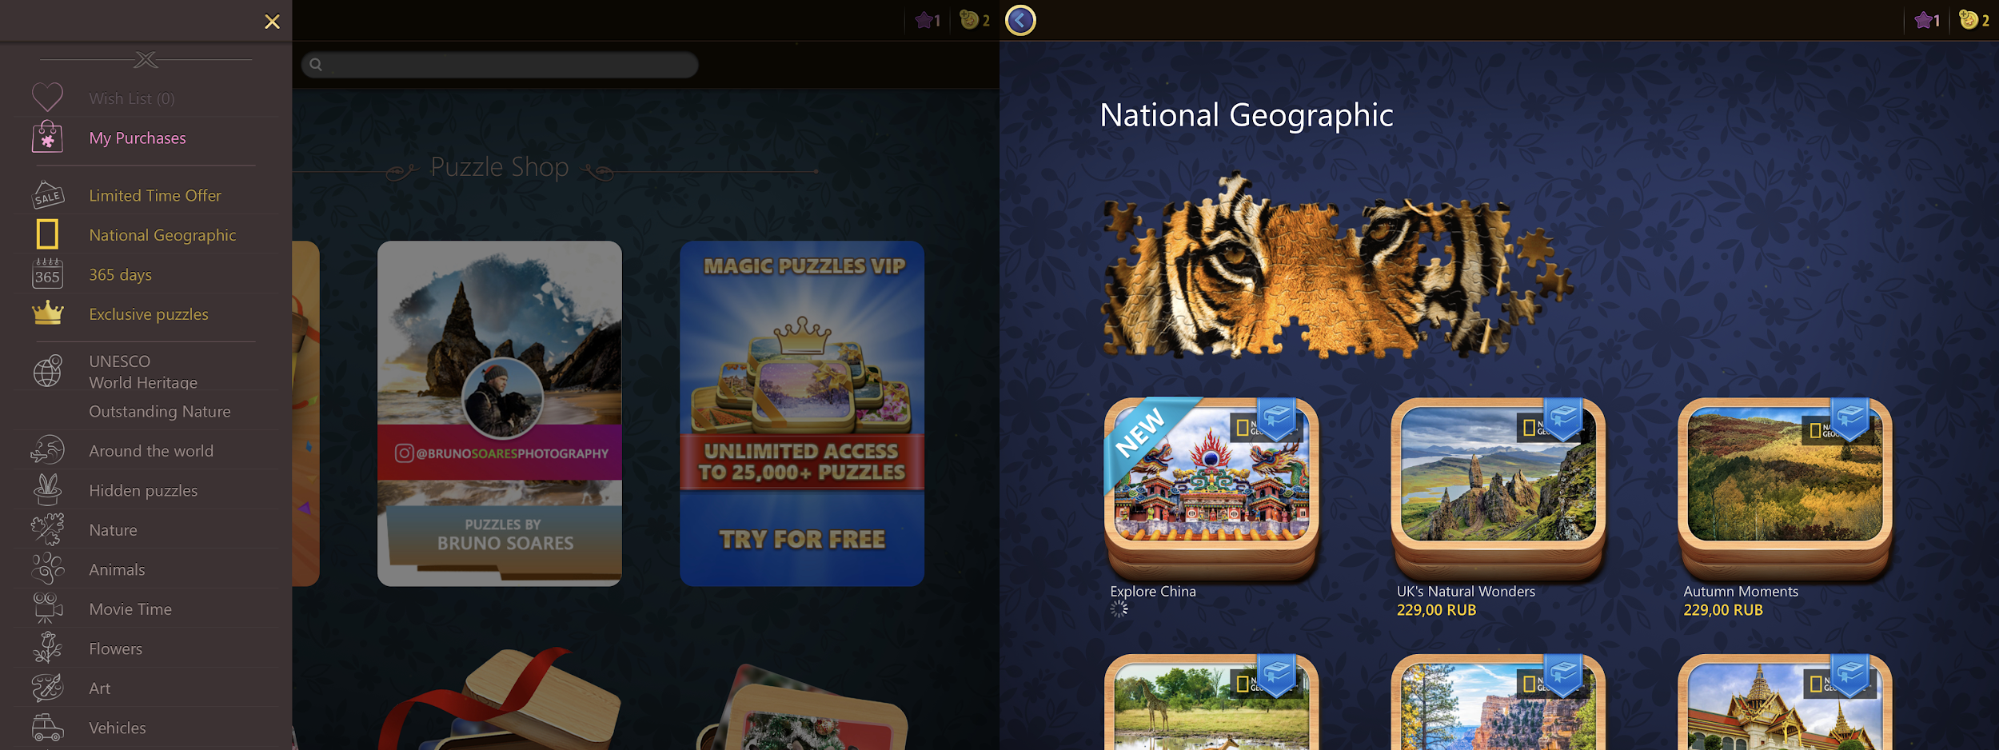 Magic_Jigsaw_Puzzles_National_Geographic